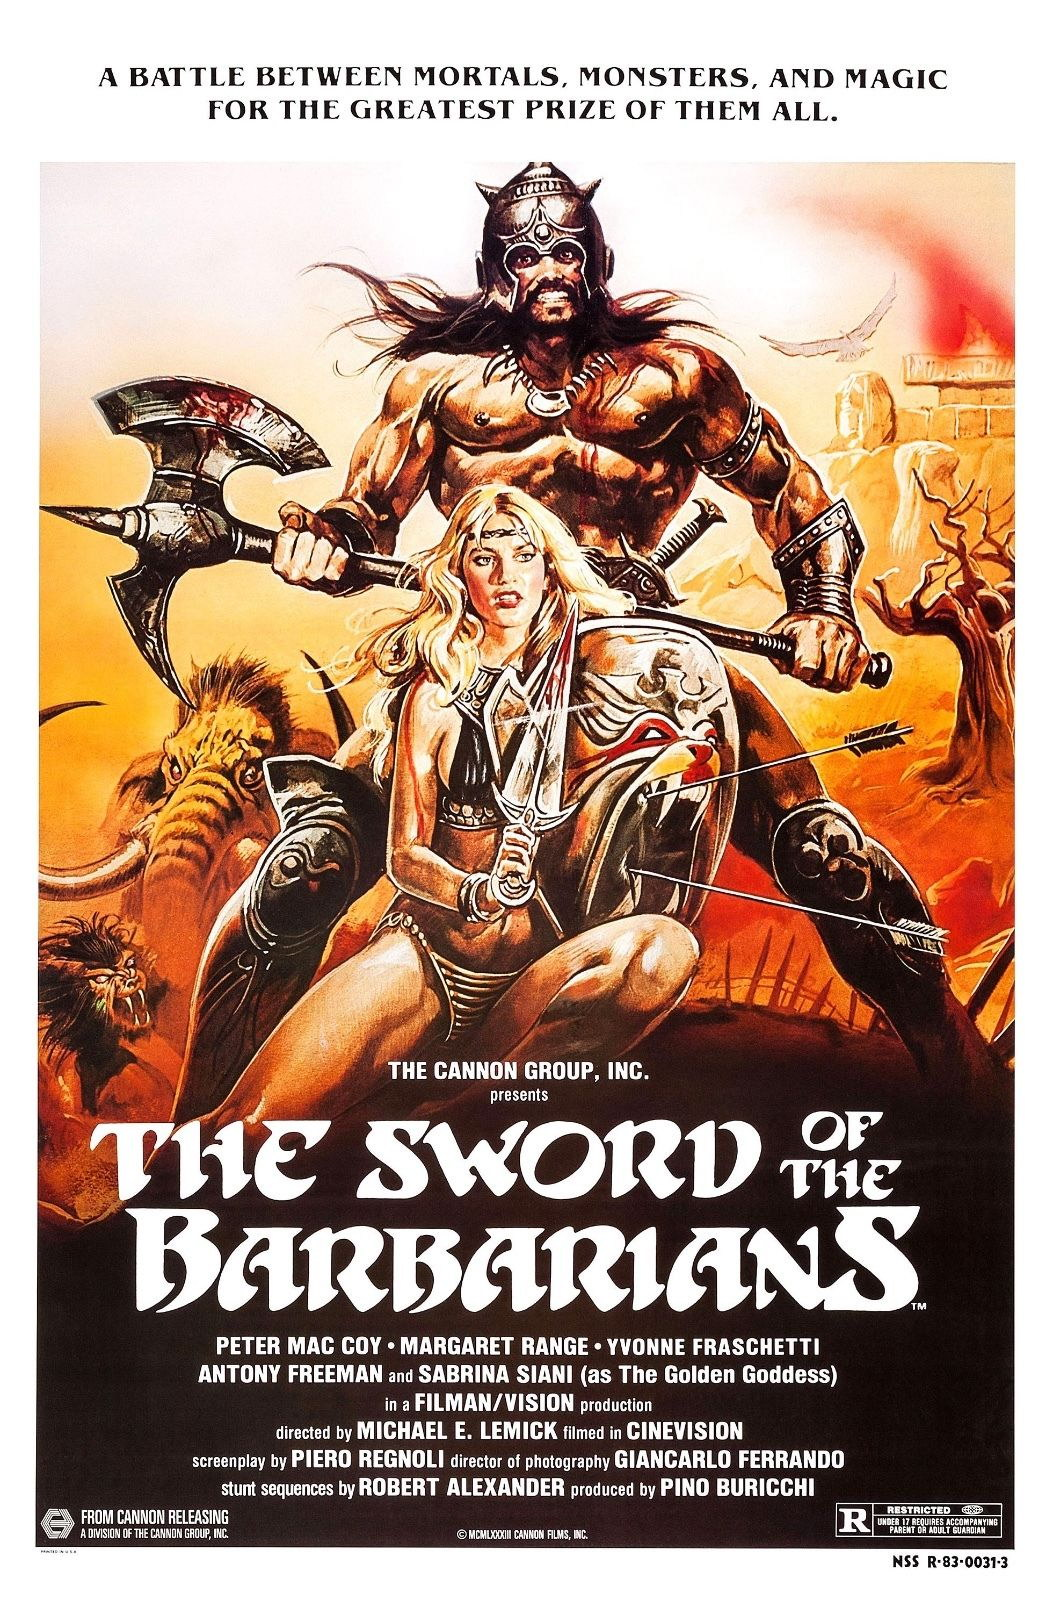 73631-The-Sword-of-the-Barbarians-Action-Adventure-FRAMED-CANVAS-PRINT-Toile